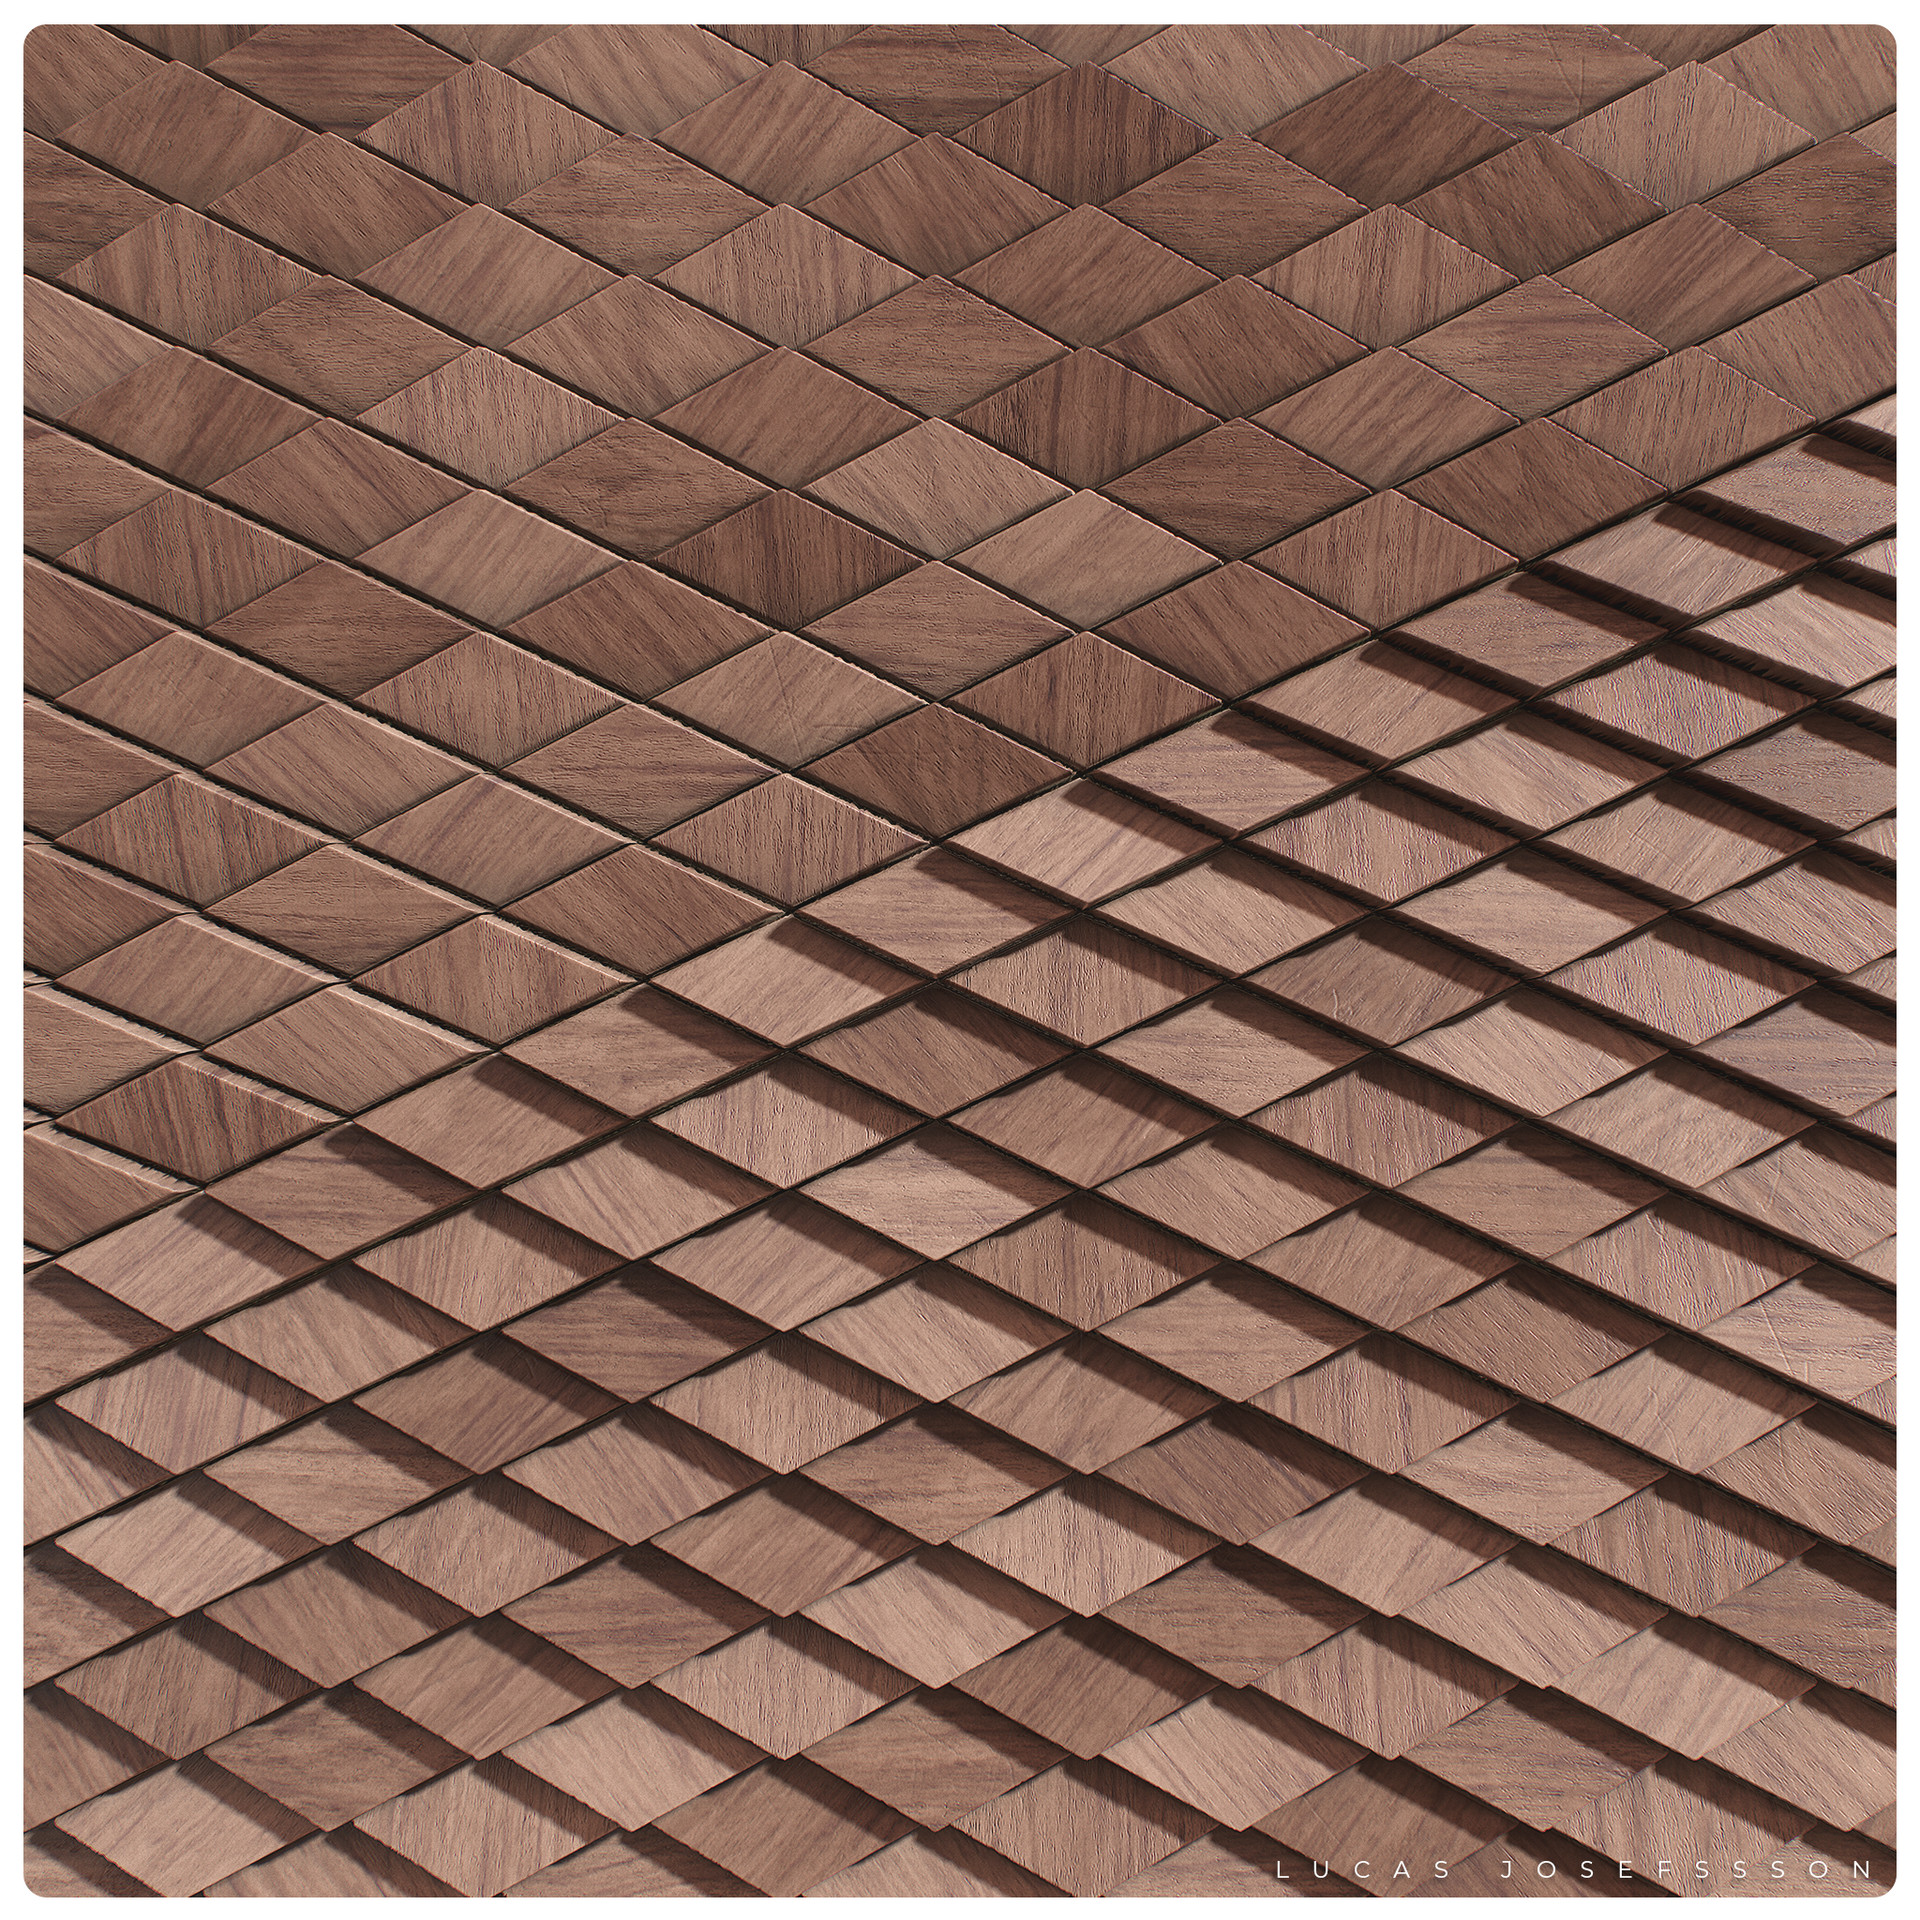 Lucas josefsson wood patterns 04